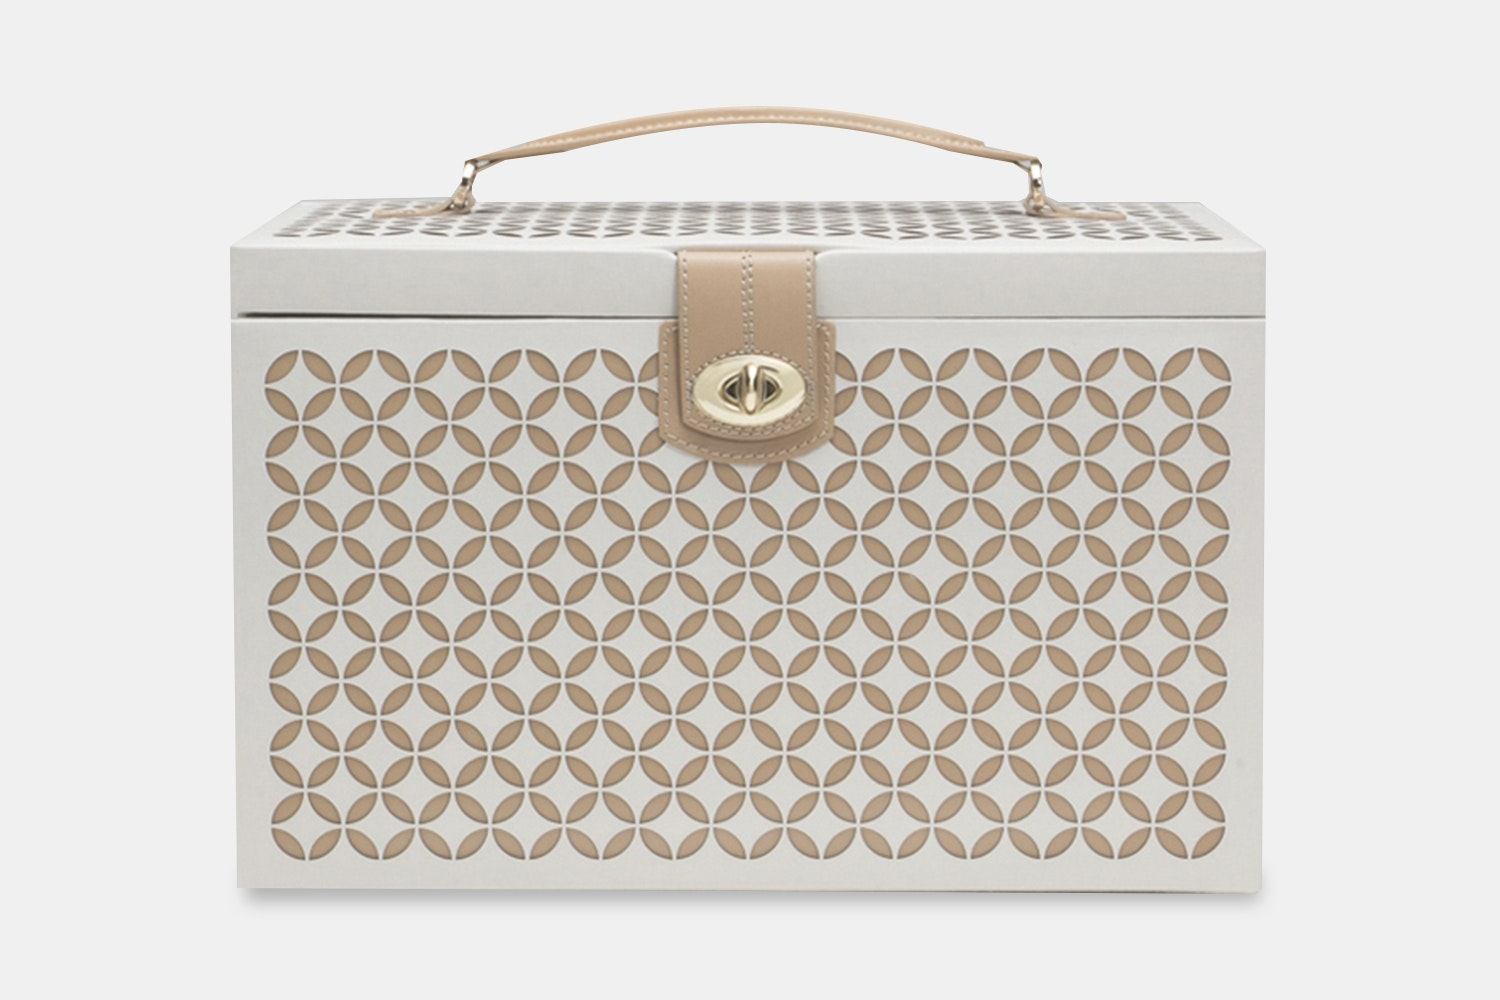 Large Jewelry Box - Creams (+ $165)